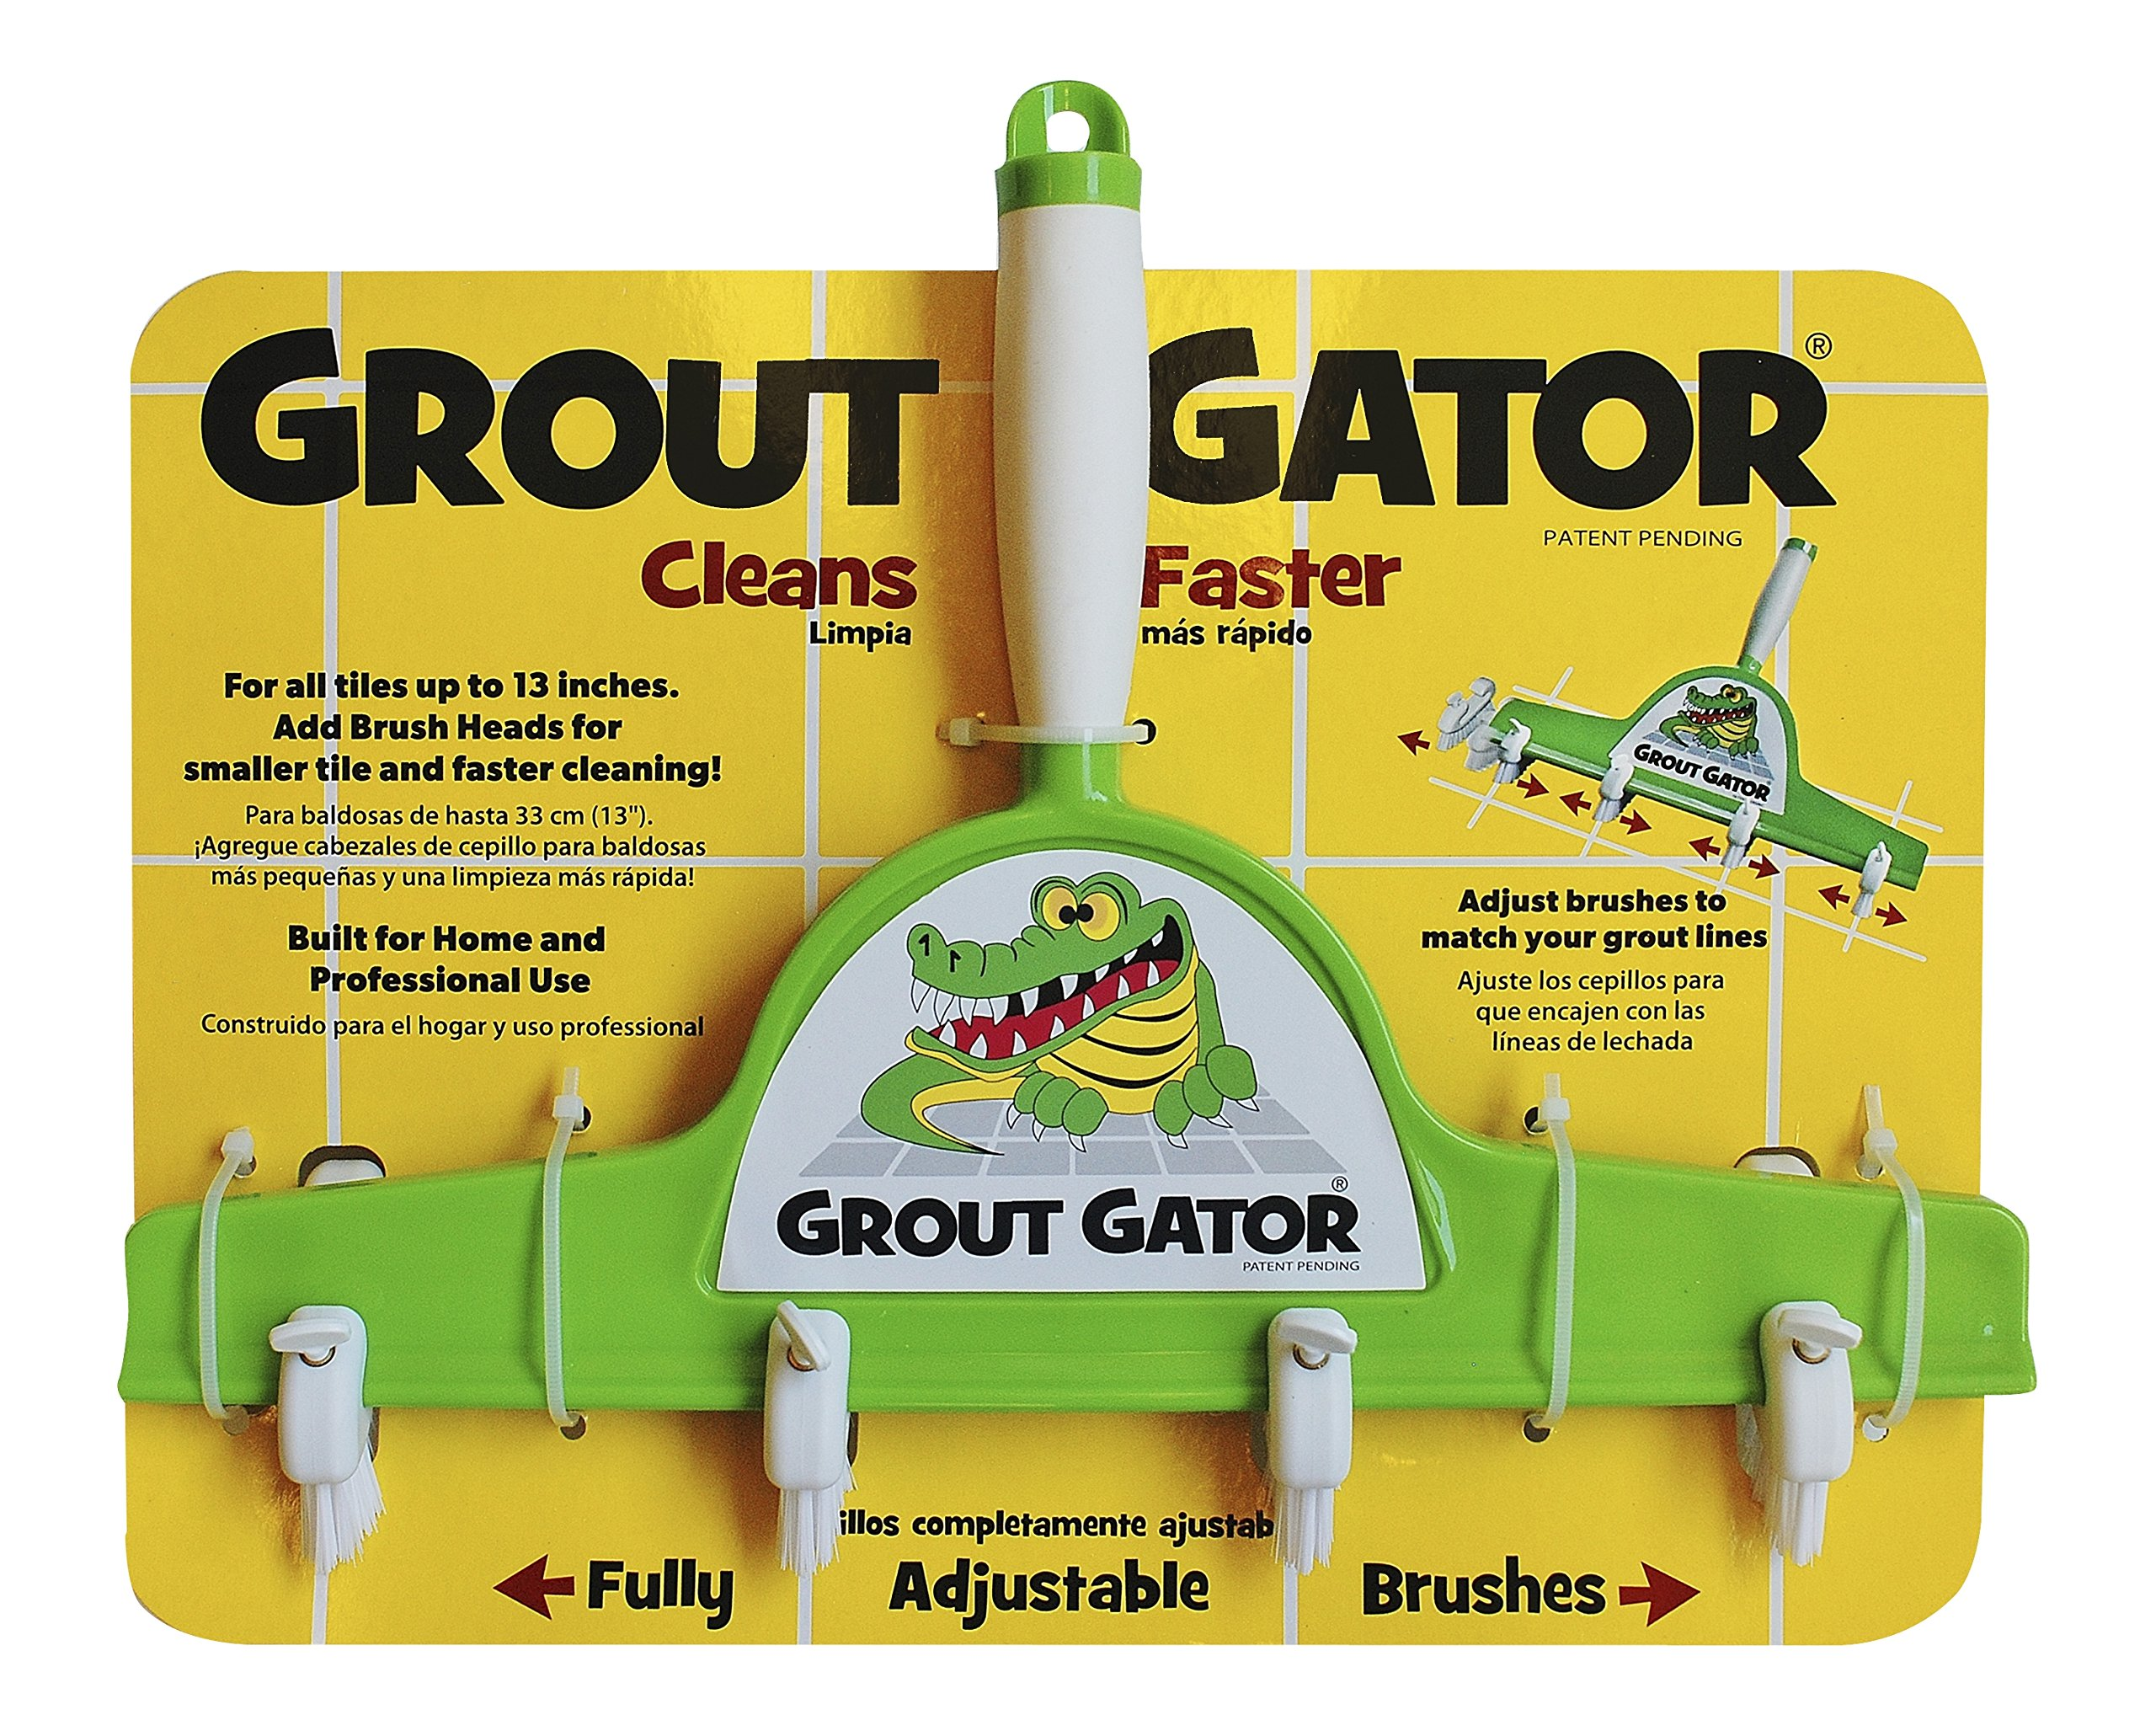 Grout Gator Cleaning Brush